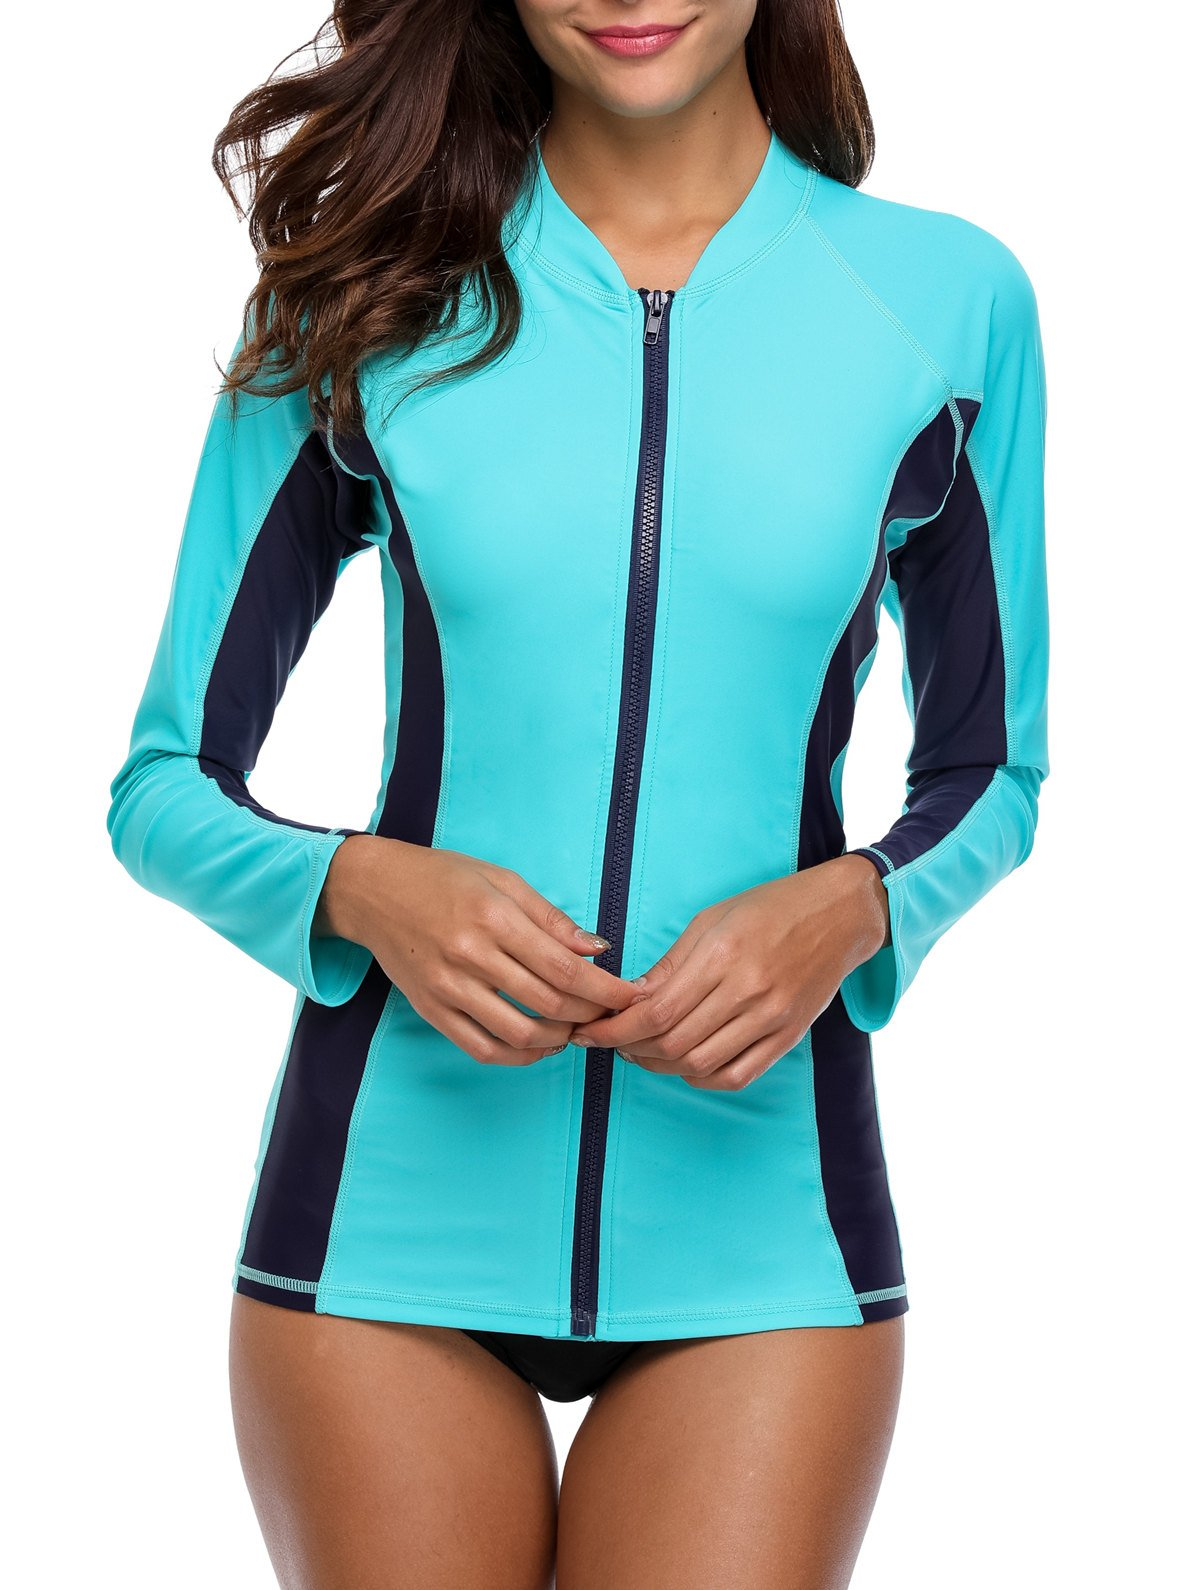 ATTRACO Long Sleeve Sporty Swim Shirt Womens Rashguard Tops Aqua Large by ATTRACO (Image #5)